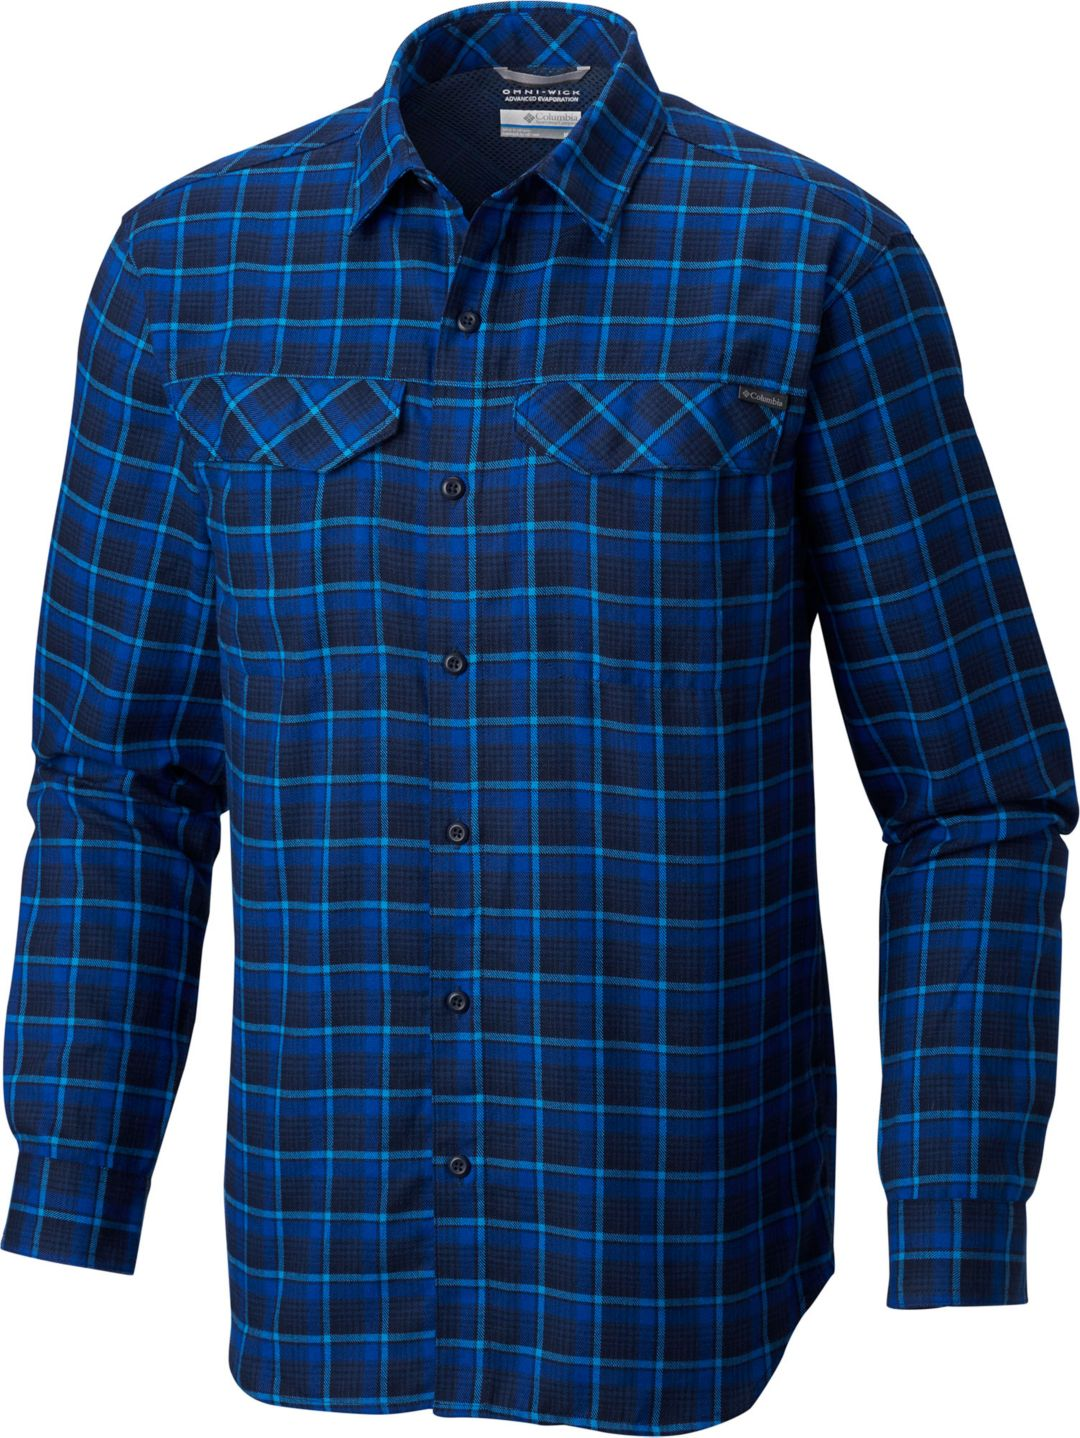 808a06c5927 Columbia Men's Silver Ridge Flannel Long Sleeve Shirt | DICK'S ...